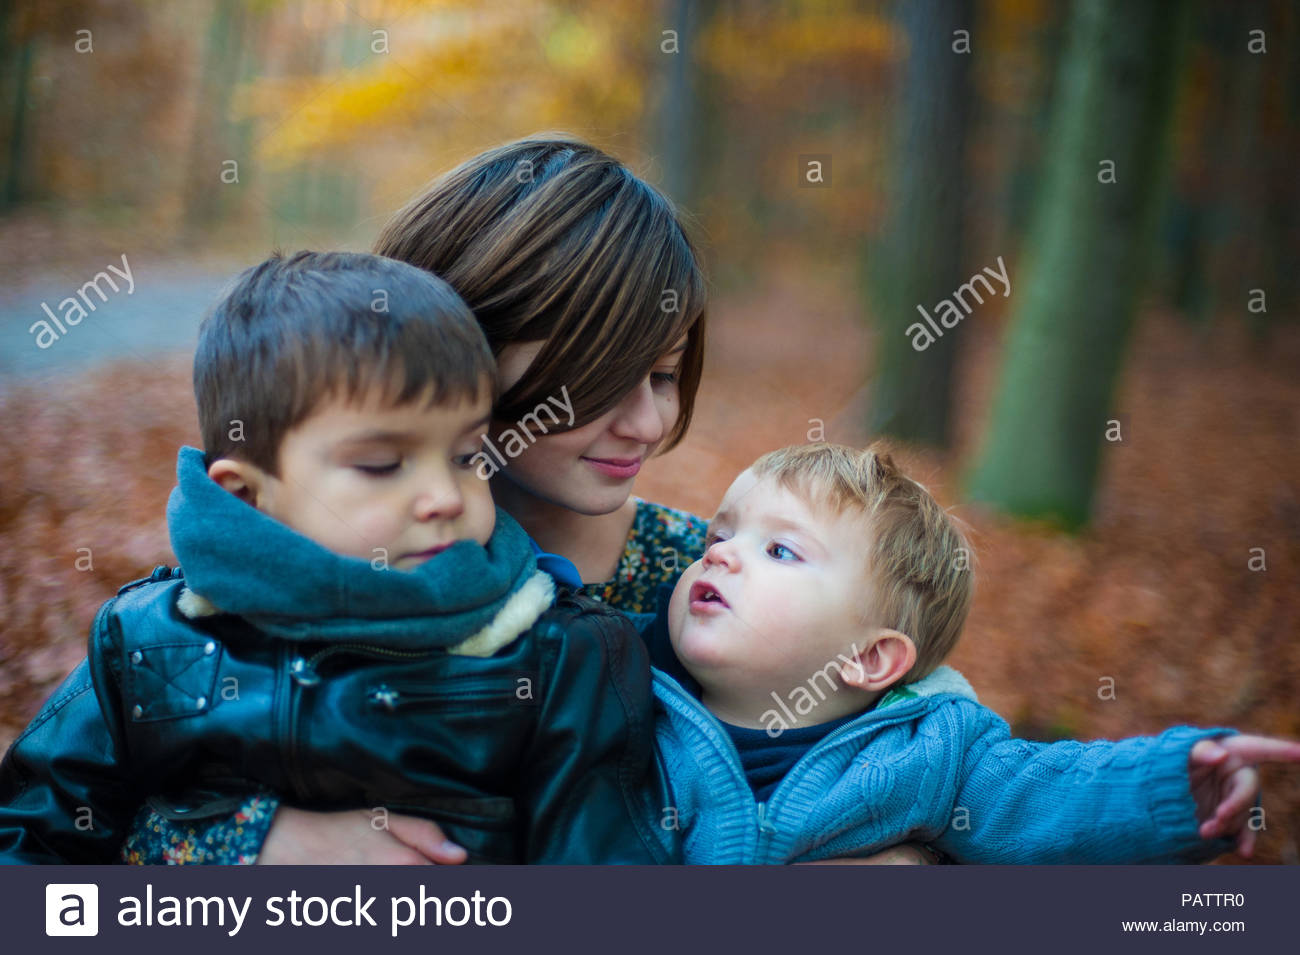 Close-up shot of a mother with her two sons outdoors together - Stock Image